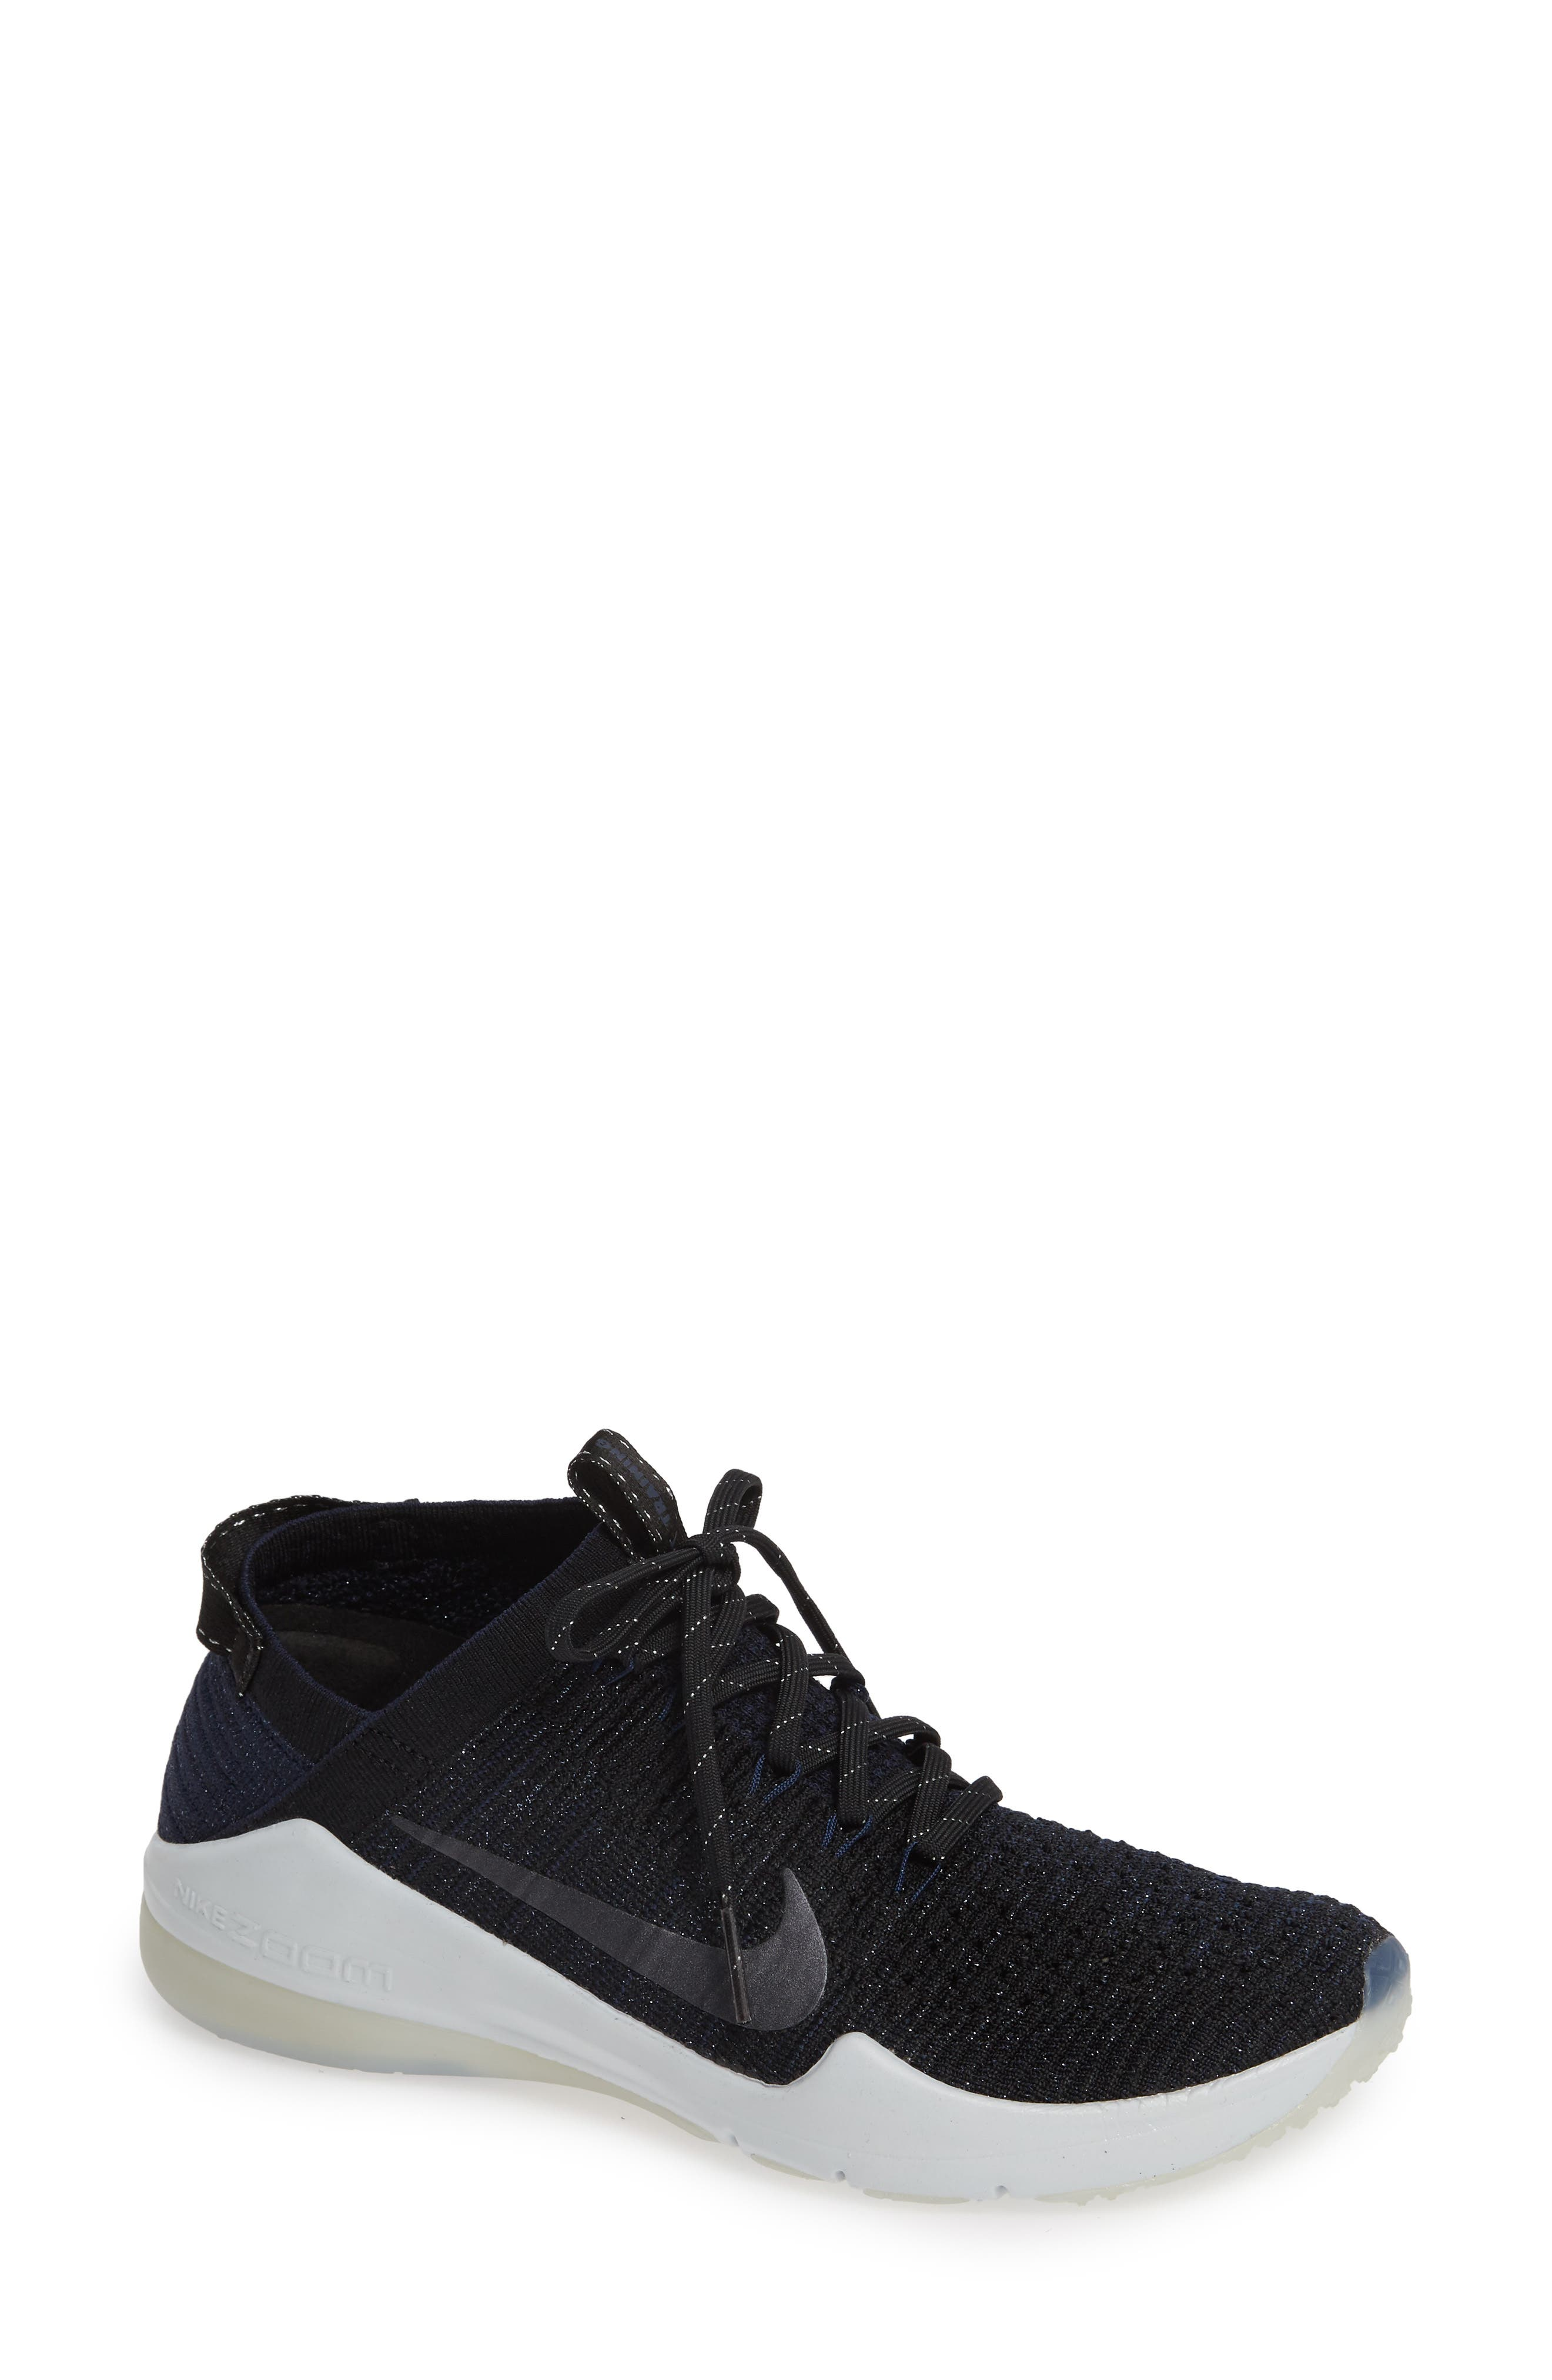 Air Zoom Fearless Flyknit 2 Training Sneaker,                             Main thumbnail 1, color,                             BLACK/ METALLIC NAVY- NAVY